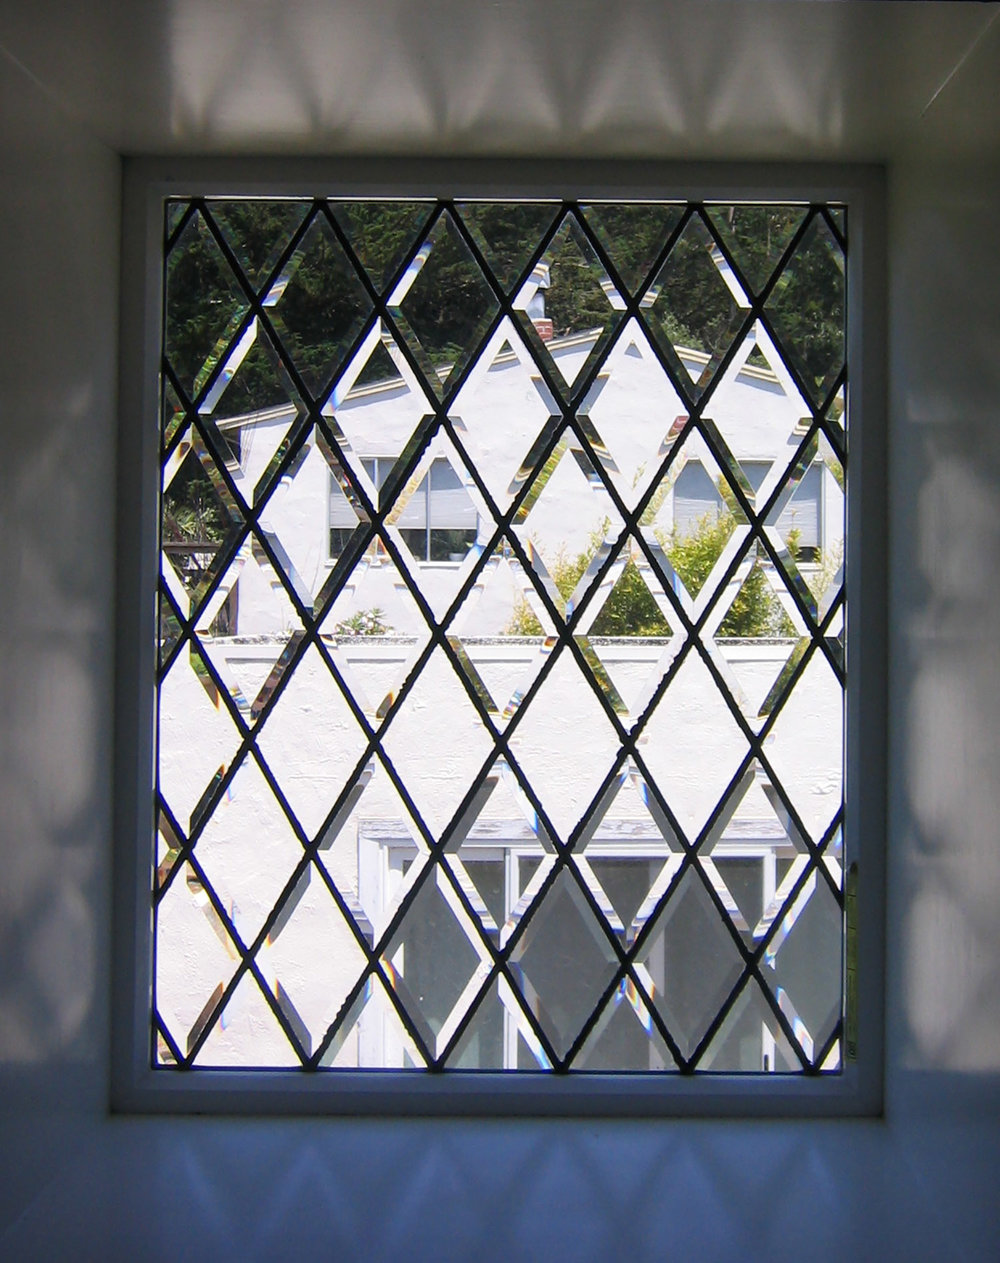 bevel diamond beveled leaded glass stained glass window palo alto atherton california san francisco2.jpg